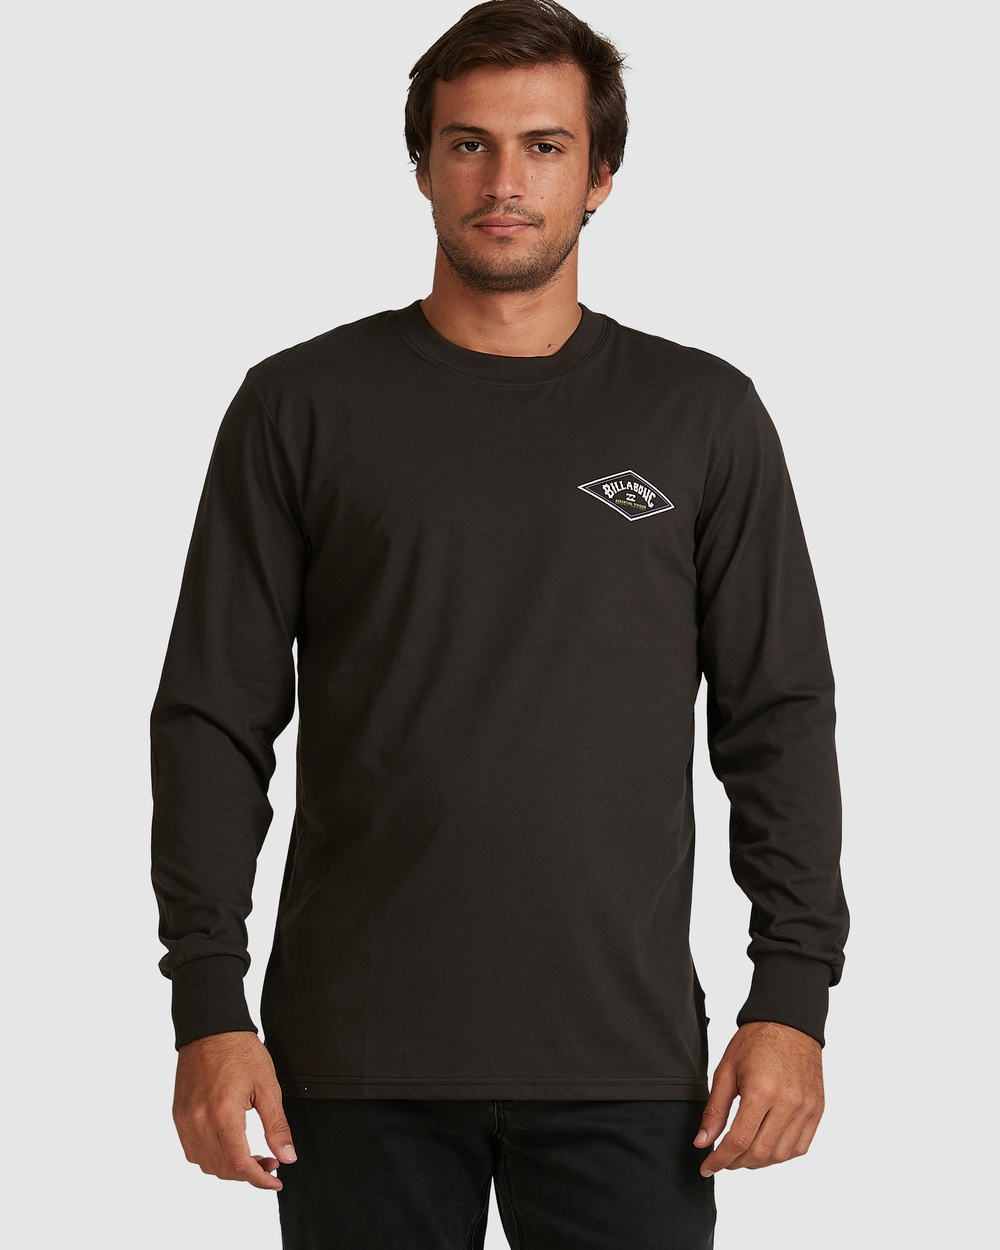 Billabong - Adiv Diamond Long Sleeve Tee - T-Shirts & Singlets (BLACK) Adiv Diamond Long Sleeve Tee